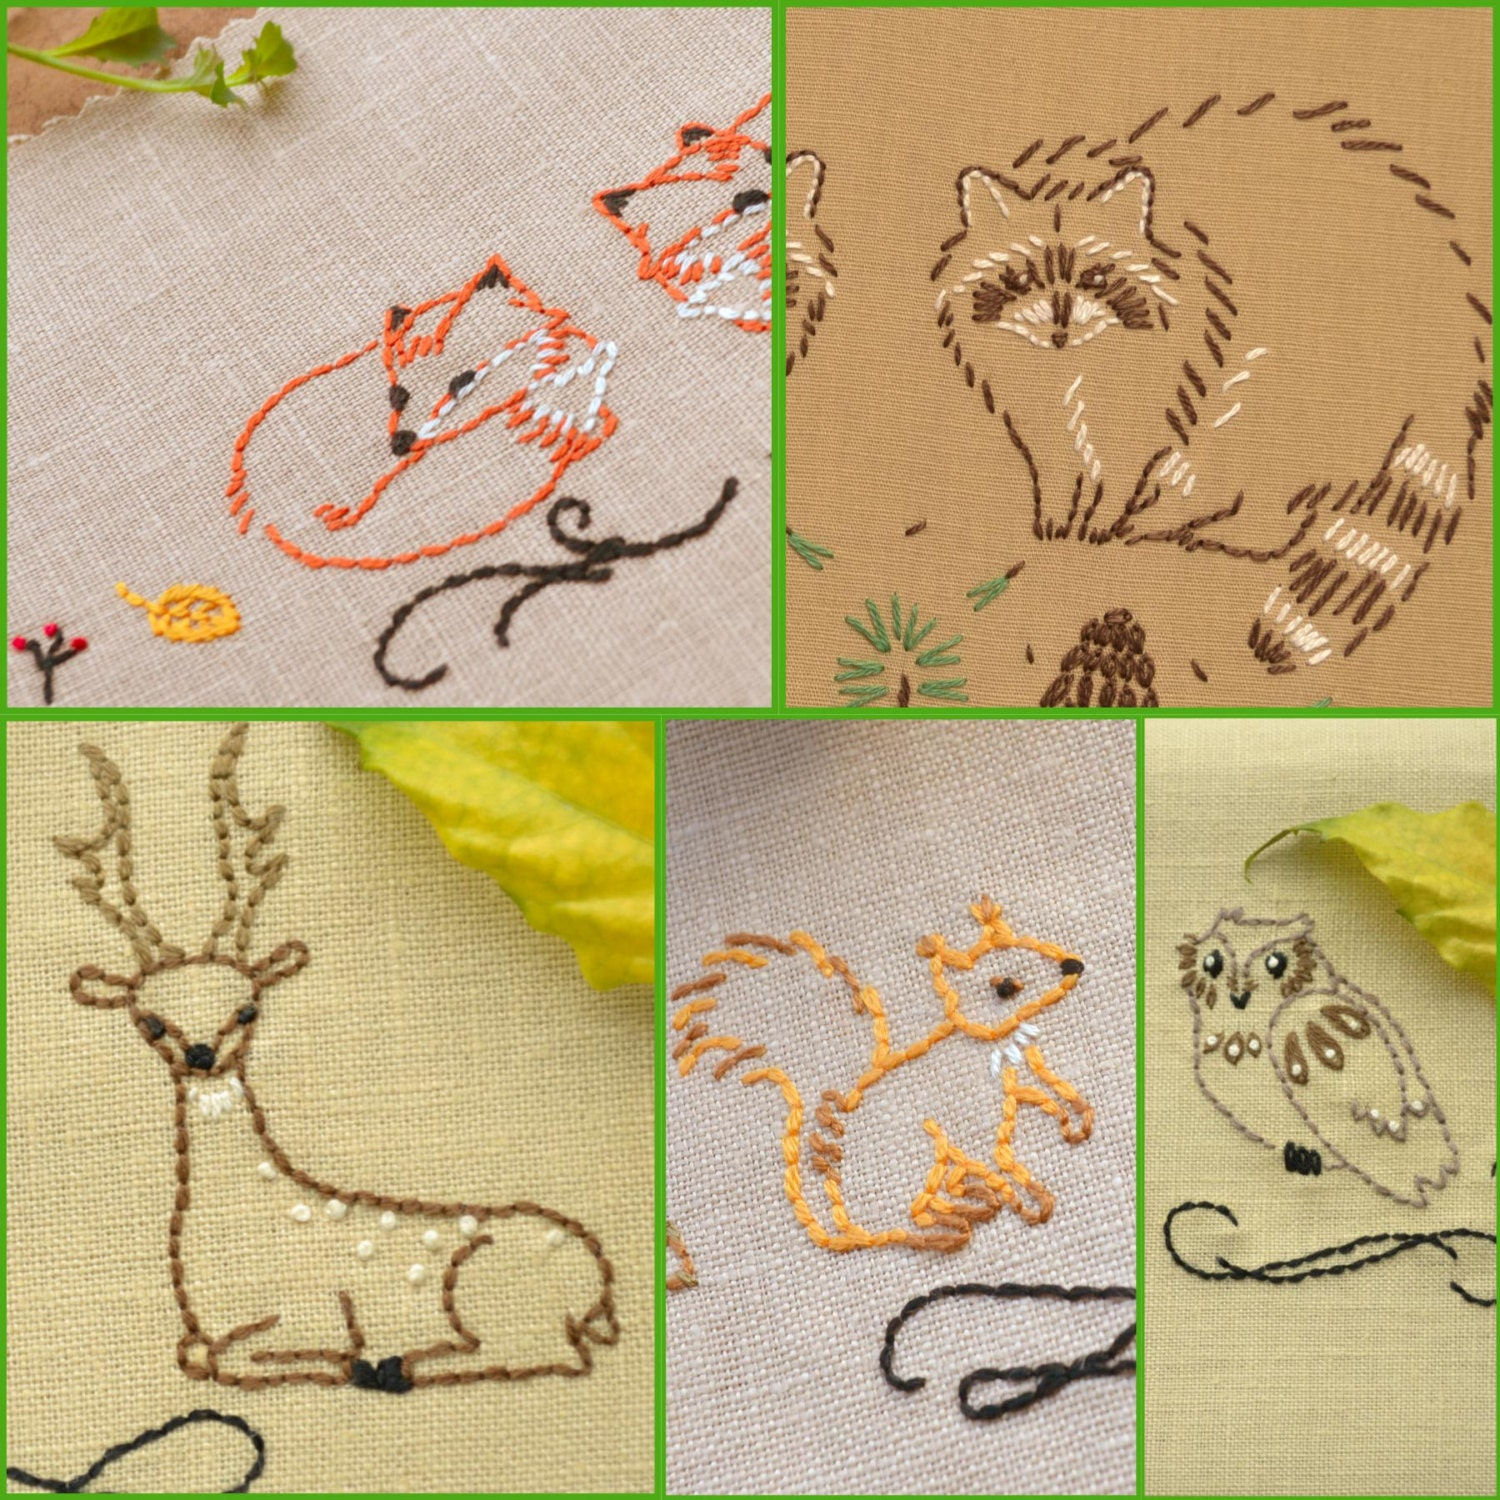 Embroidery pattern fox embroidery woodland embroidery hand hand embroidery patterns set woodland animals embroidery pattern for quilt blocks or kitchen towels bankloansurffo Gallery